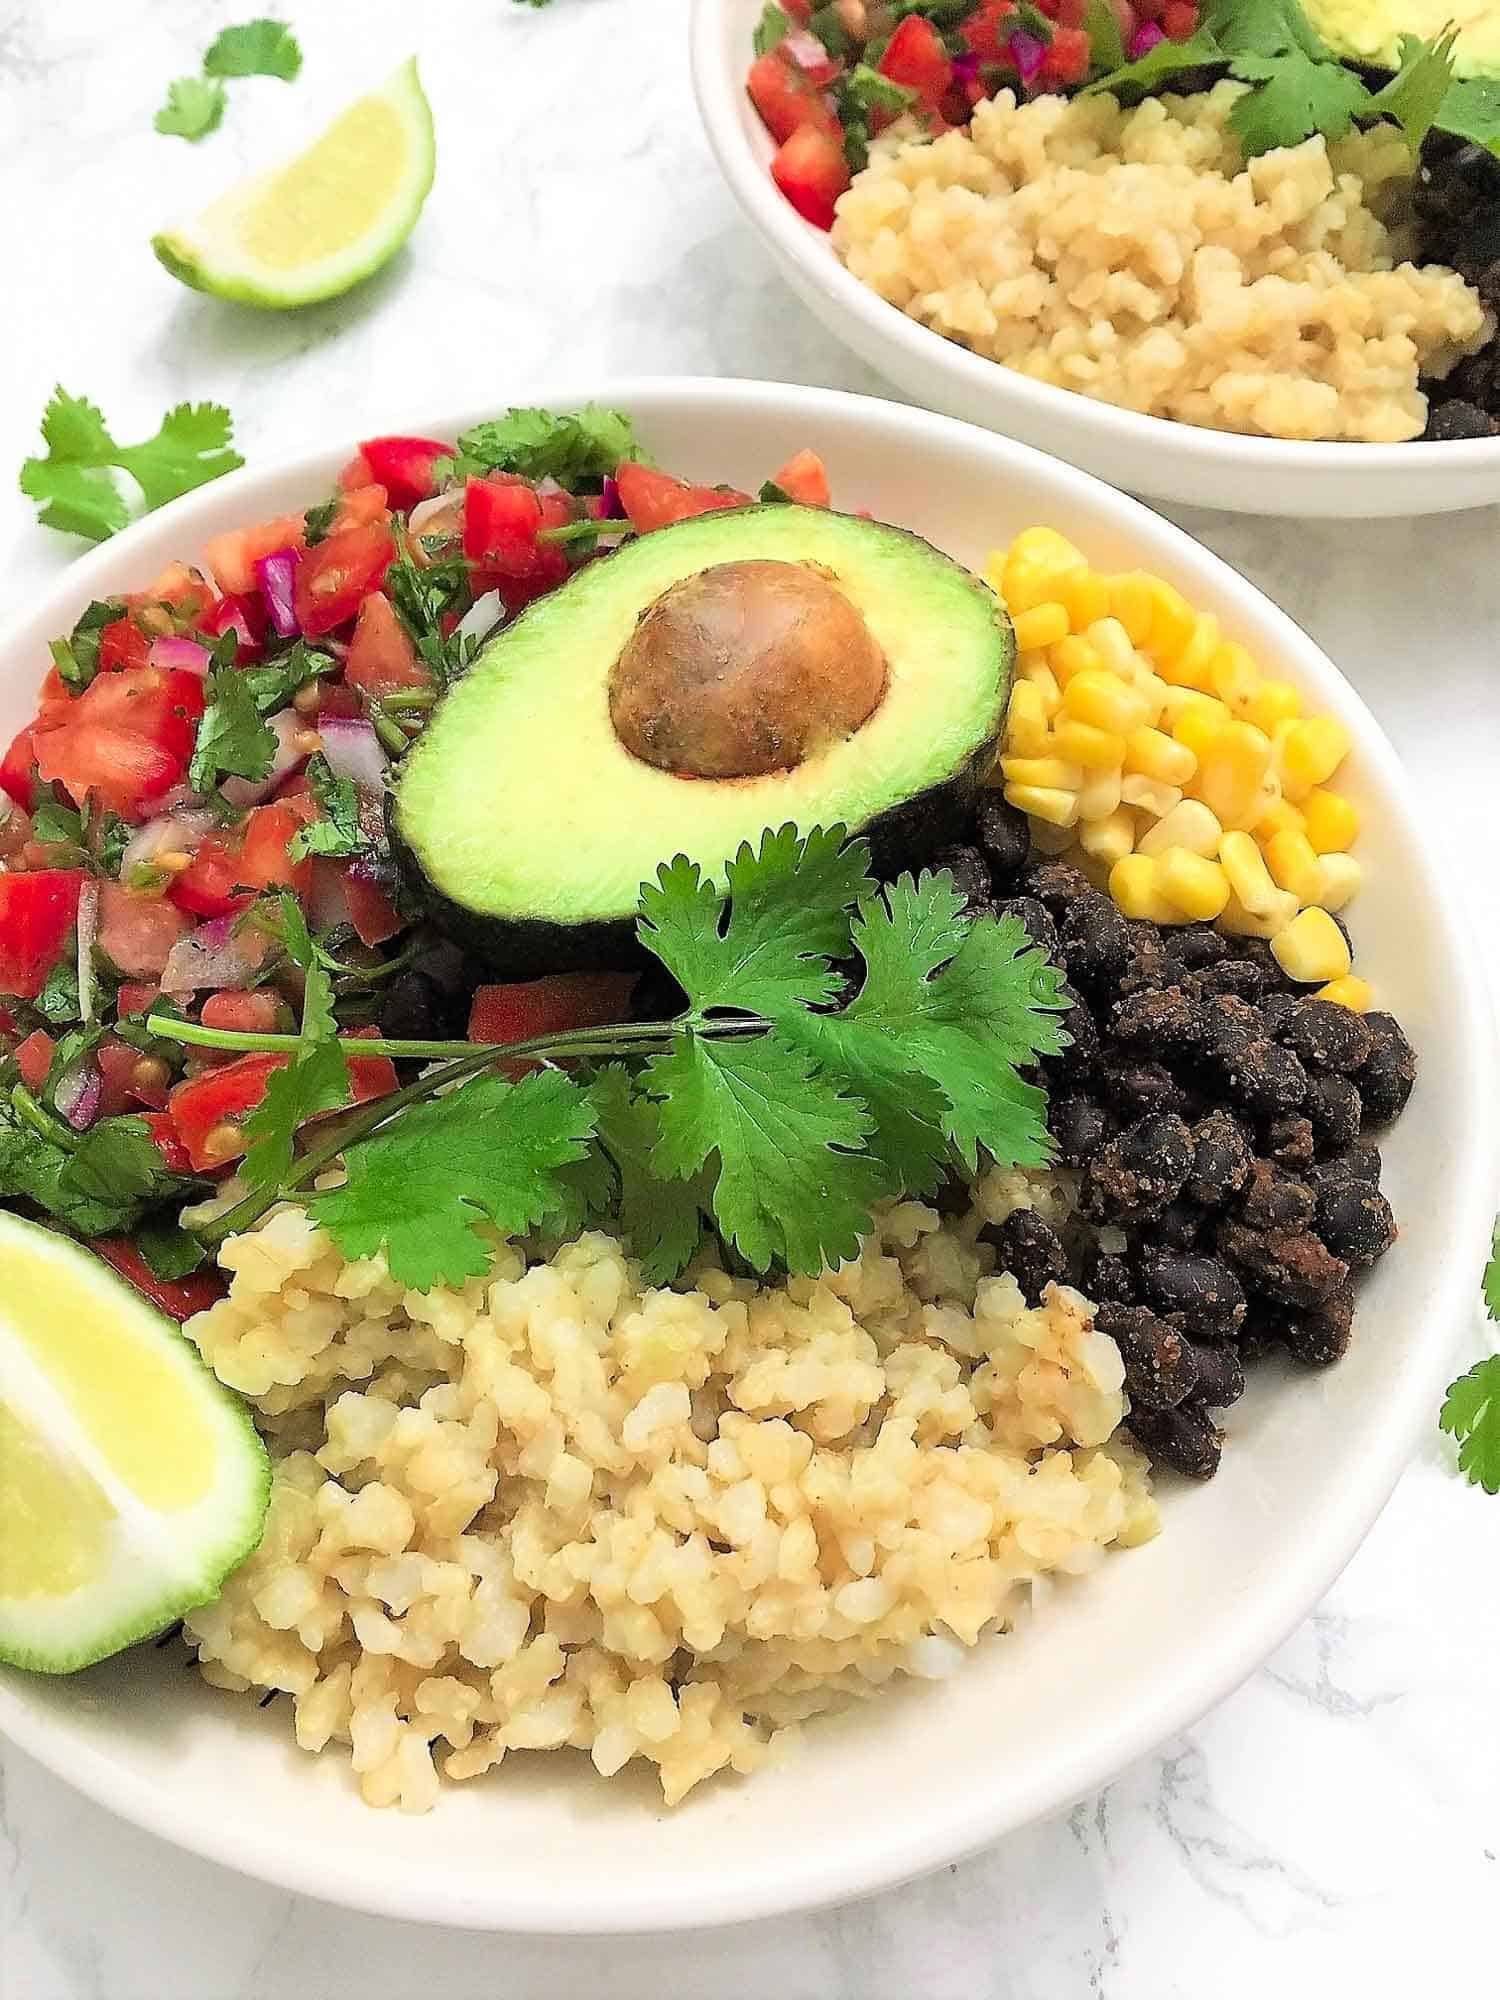 rounded mexican buddha bowl of rice, black beans, corn, tomato salad, avocado and a lime wedge